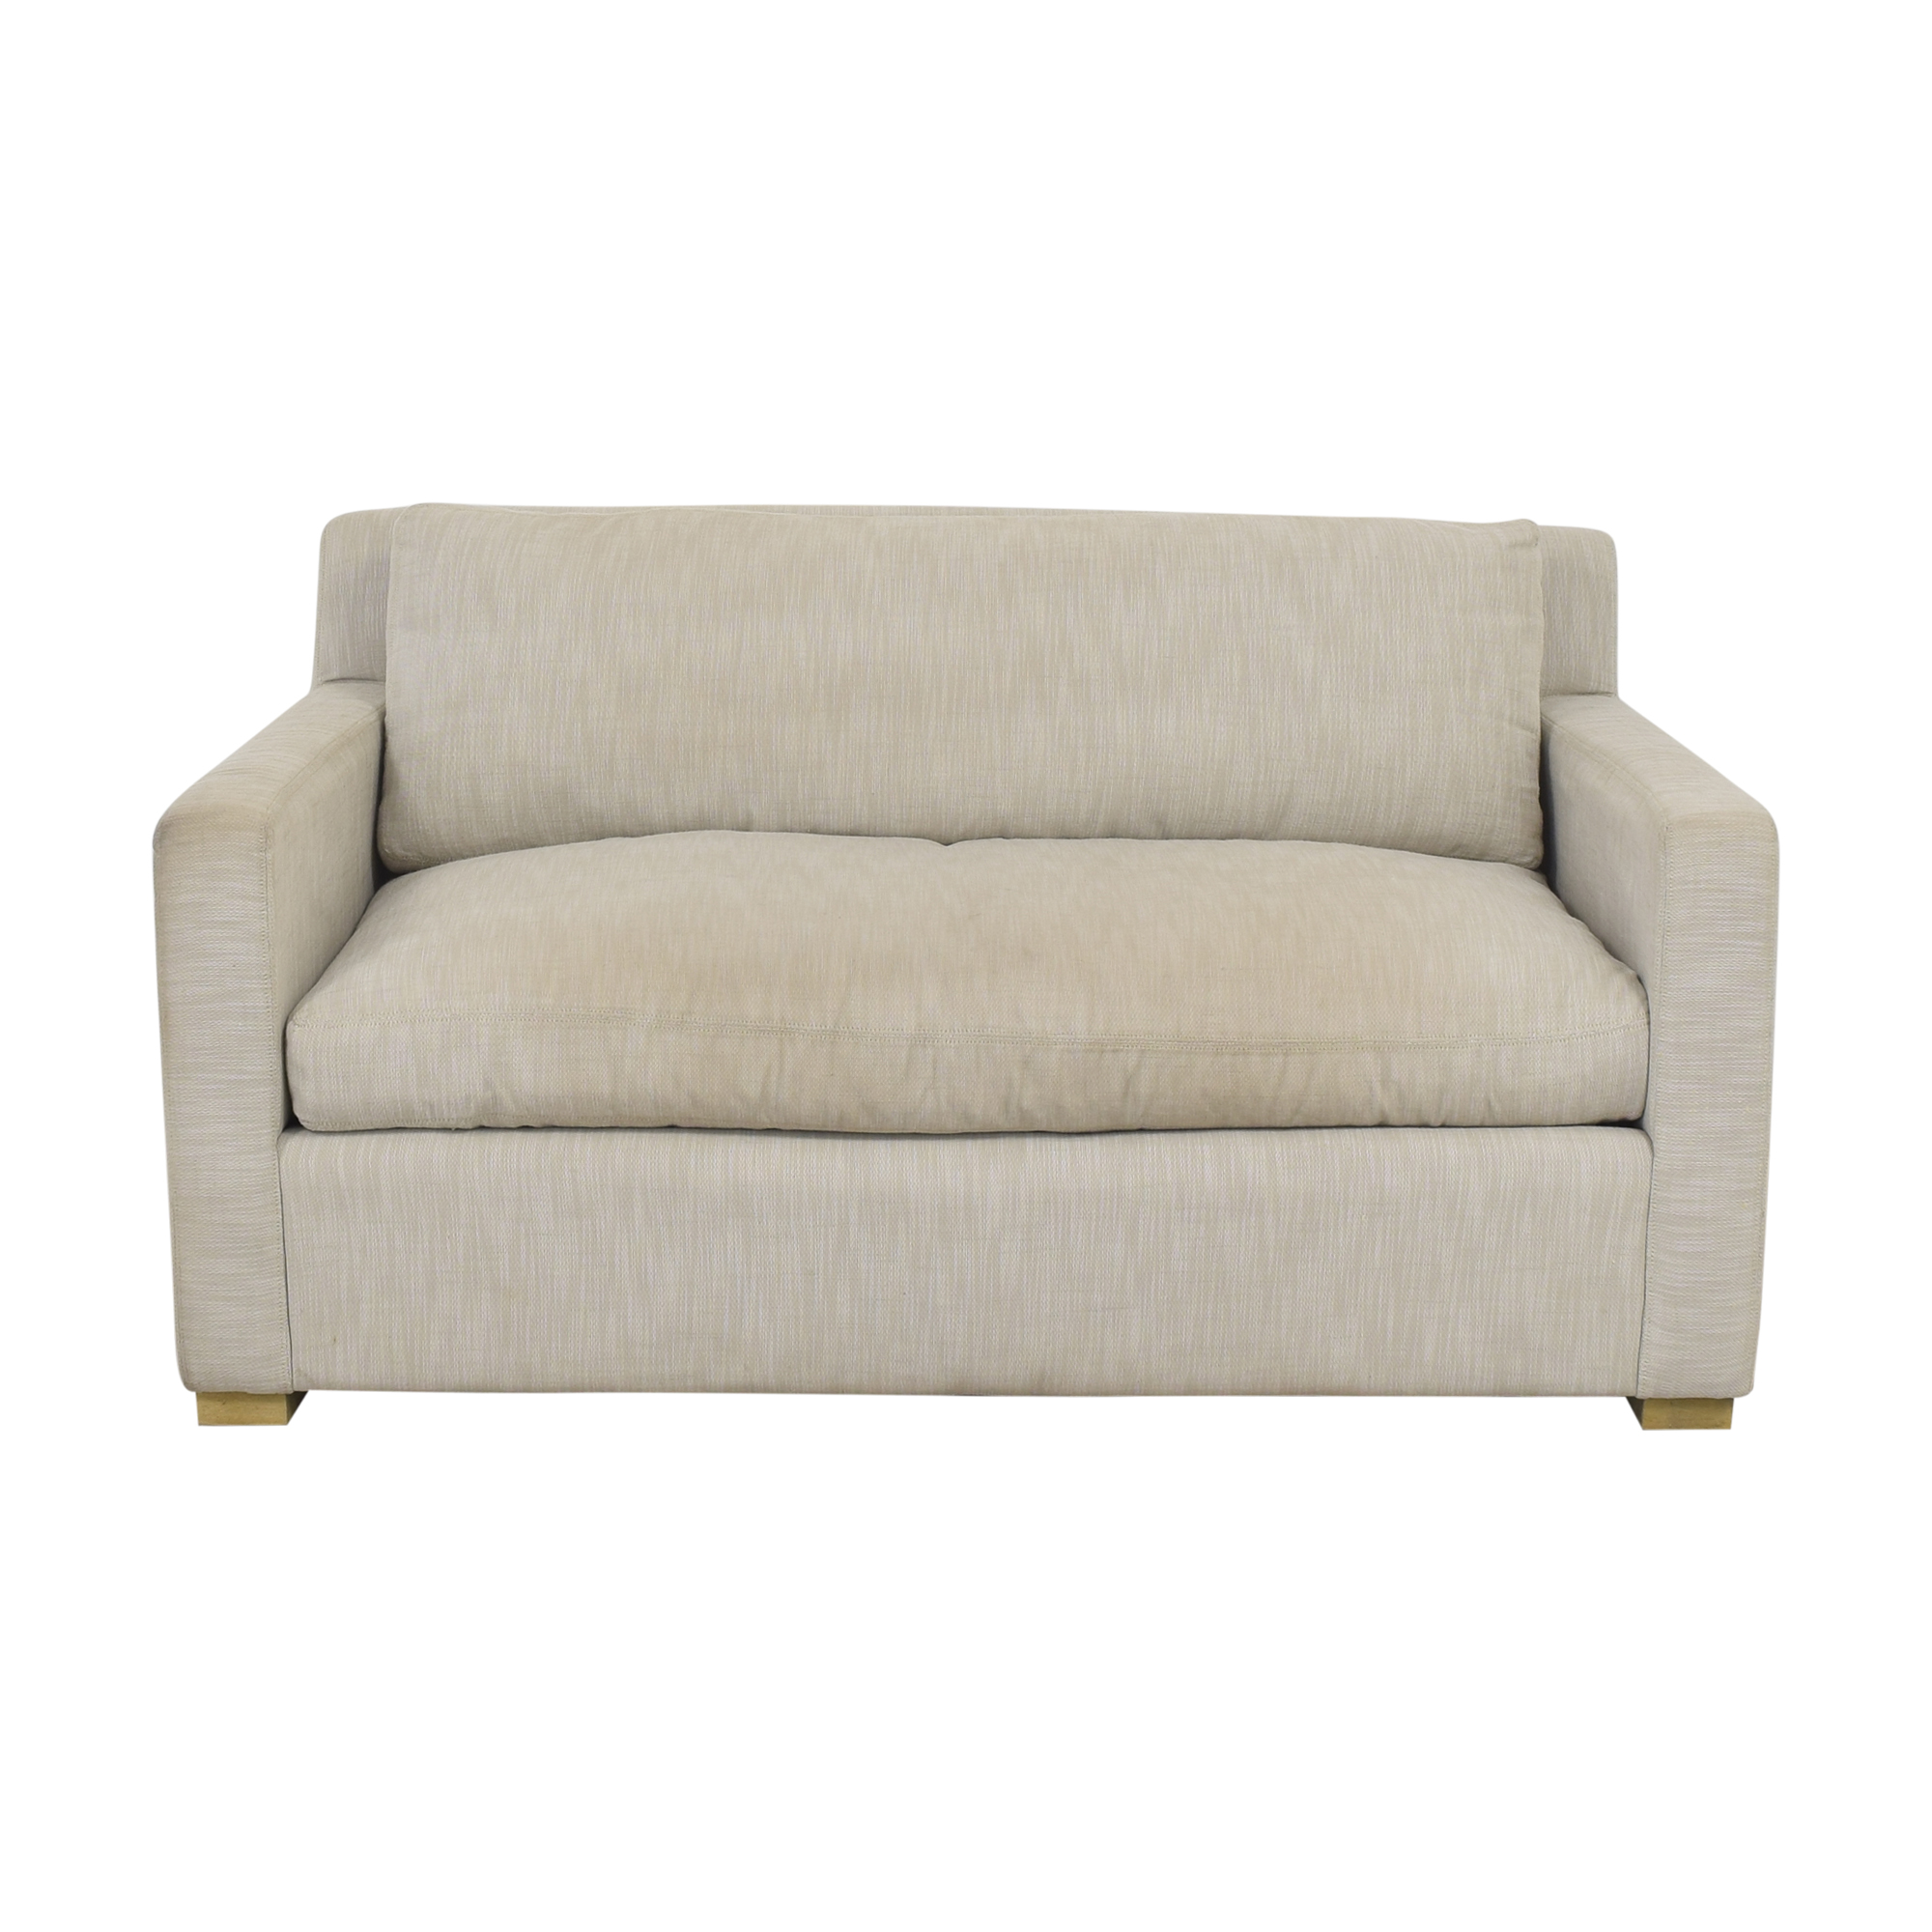 Restoration Hardware Restoration Hardware Belgian Track Arm Sofa for sale